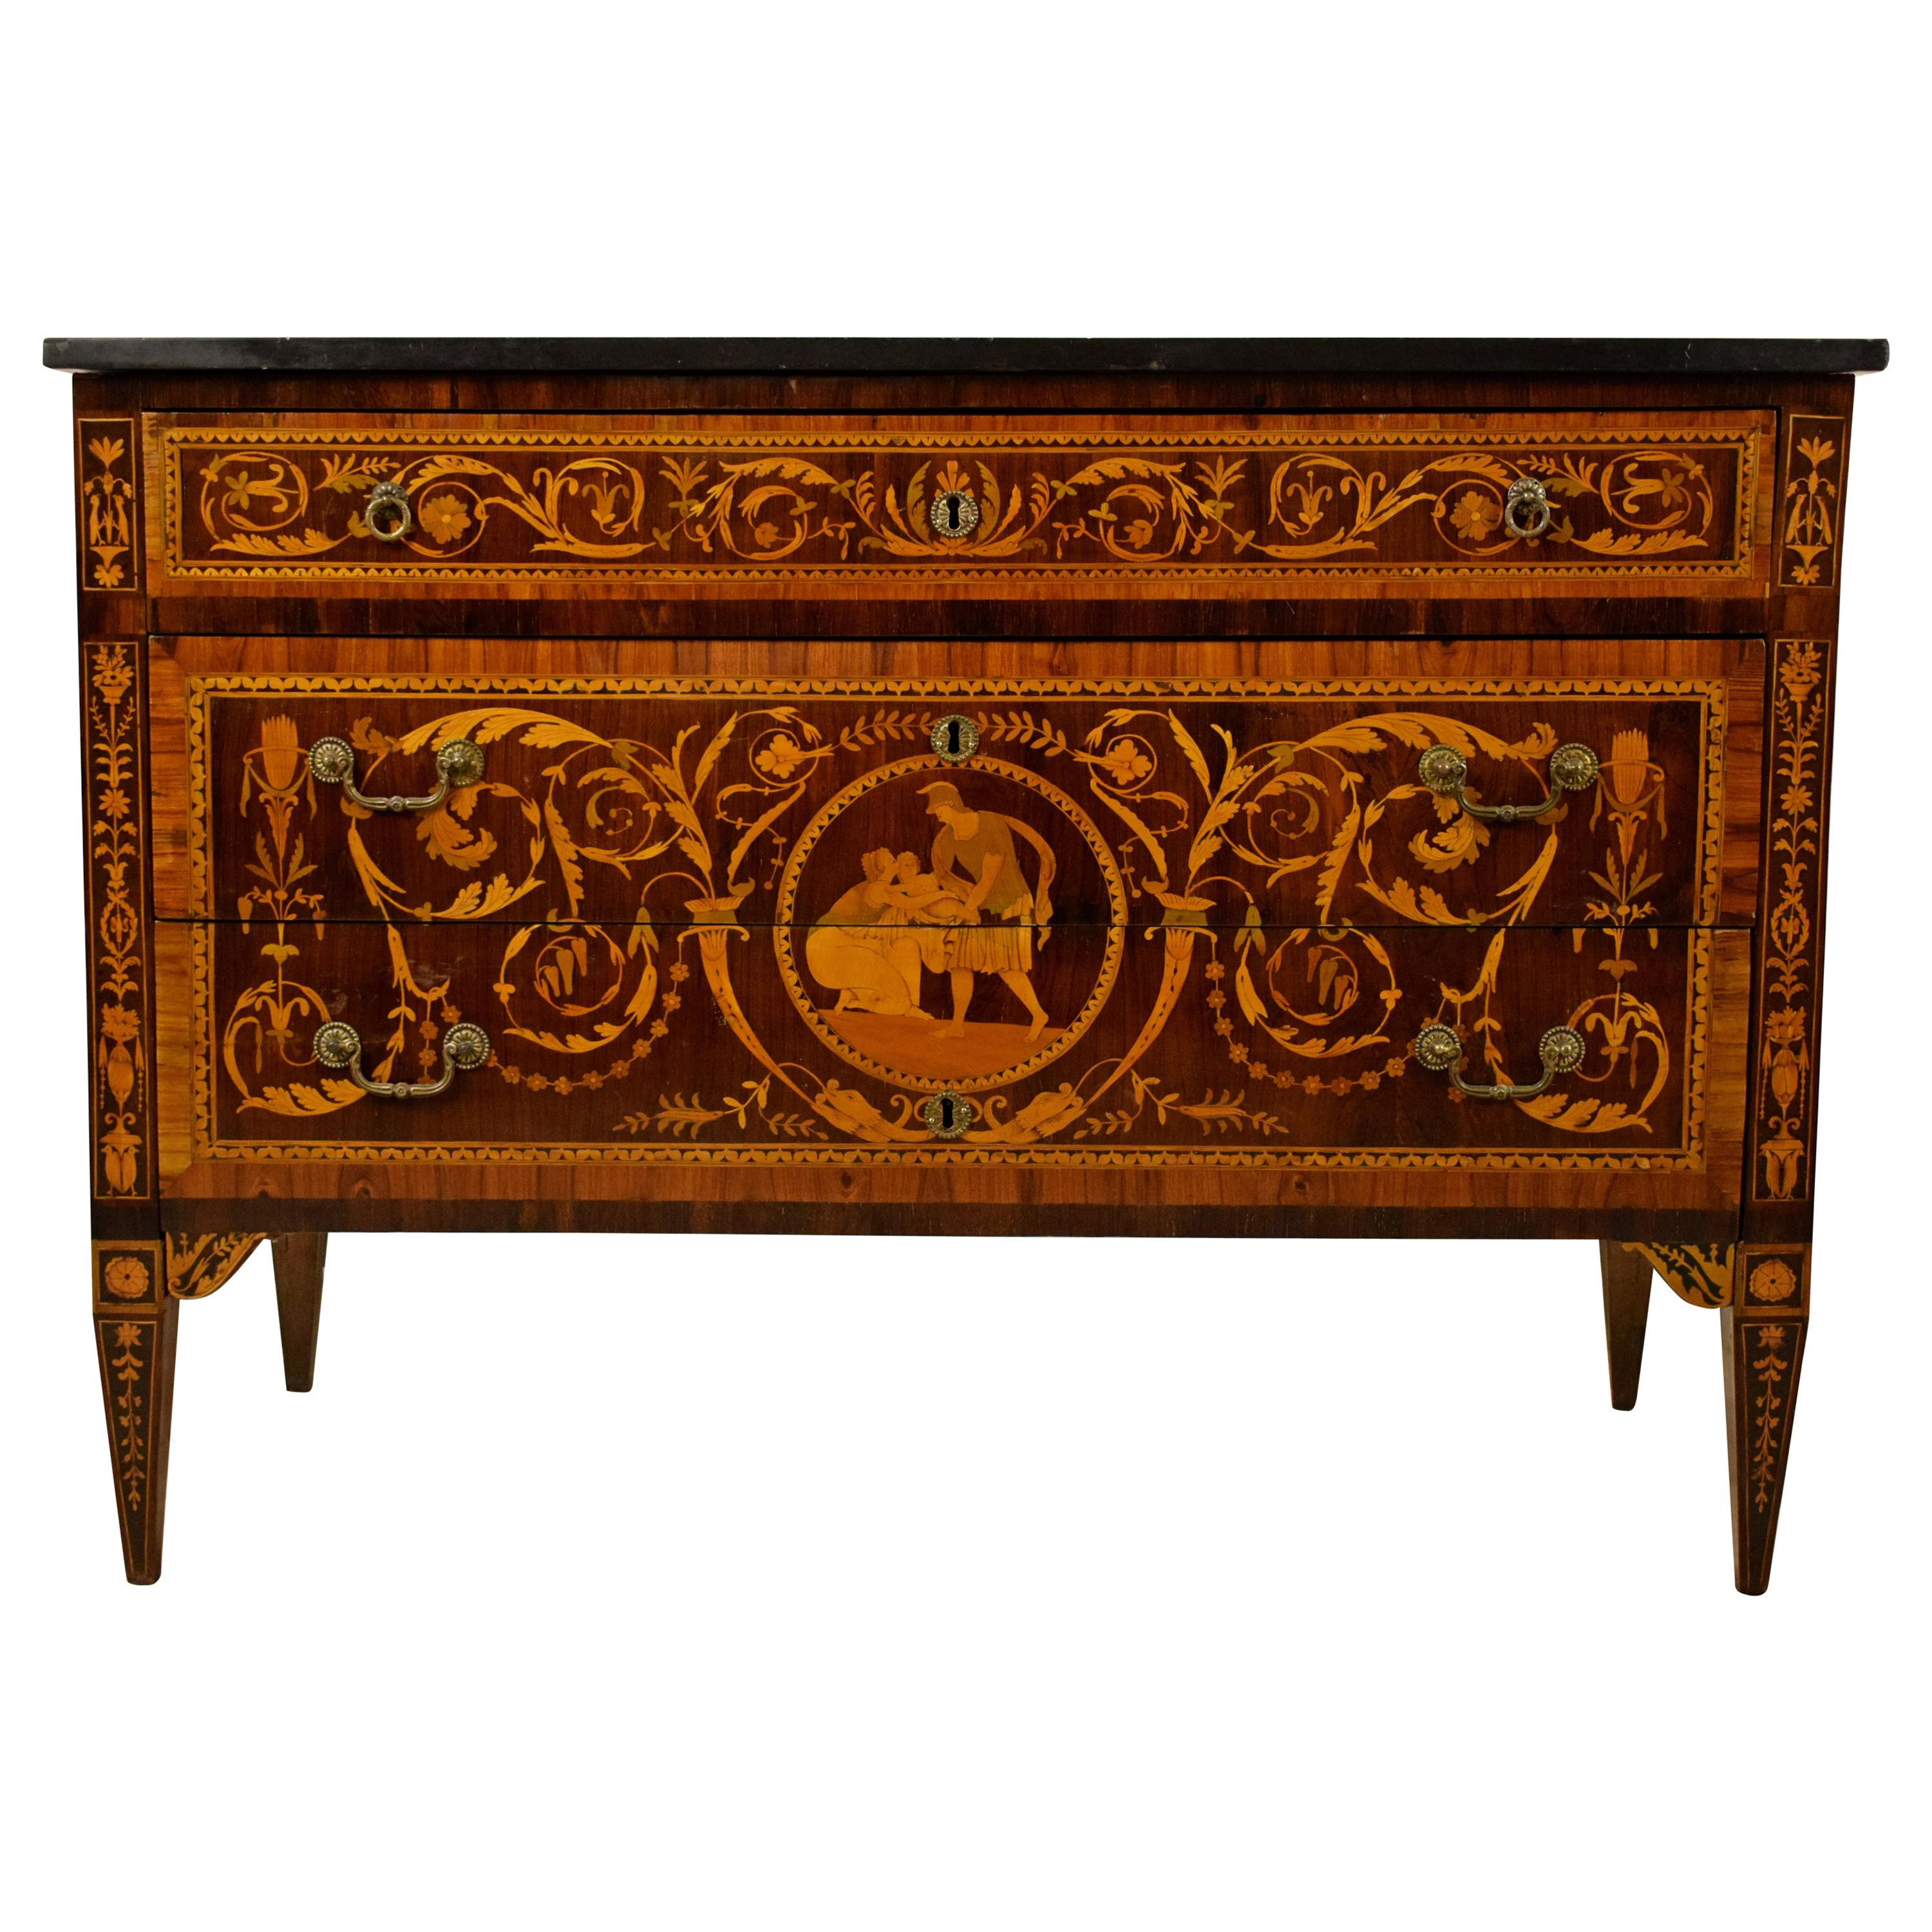 18th Century, Italian Neoclassical Inlaid Chest of Drawers, Marble Top